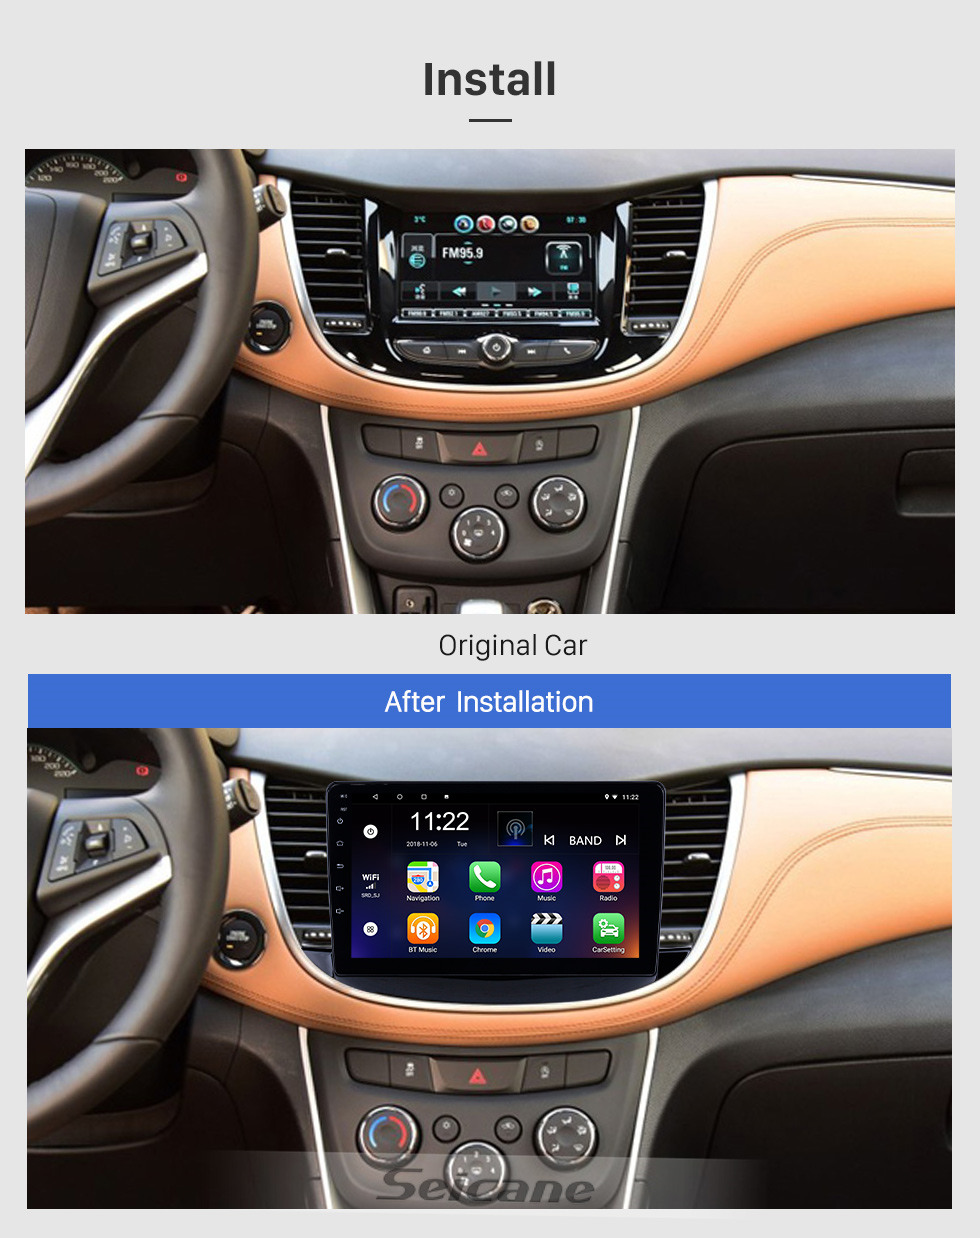 Seicane OEM 9 inch Android 10.0 Radio for 2017-2019 Chevy Chevrolet Trax Bluetooth HD Touchscreen GPS Navigation support Carplay DVR OBD